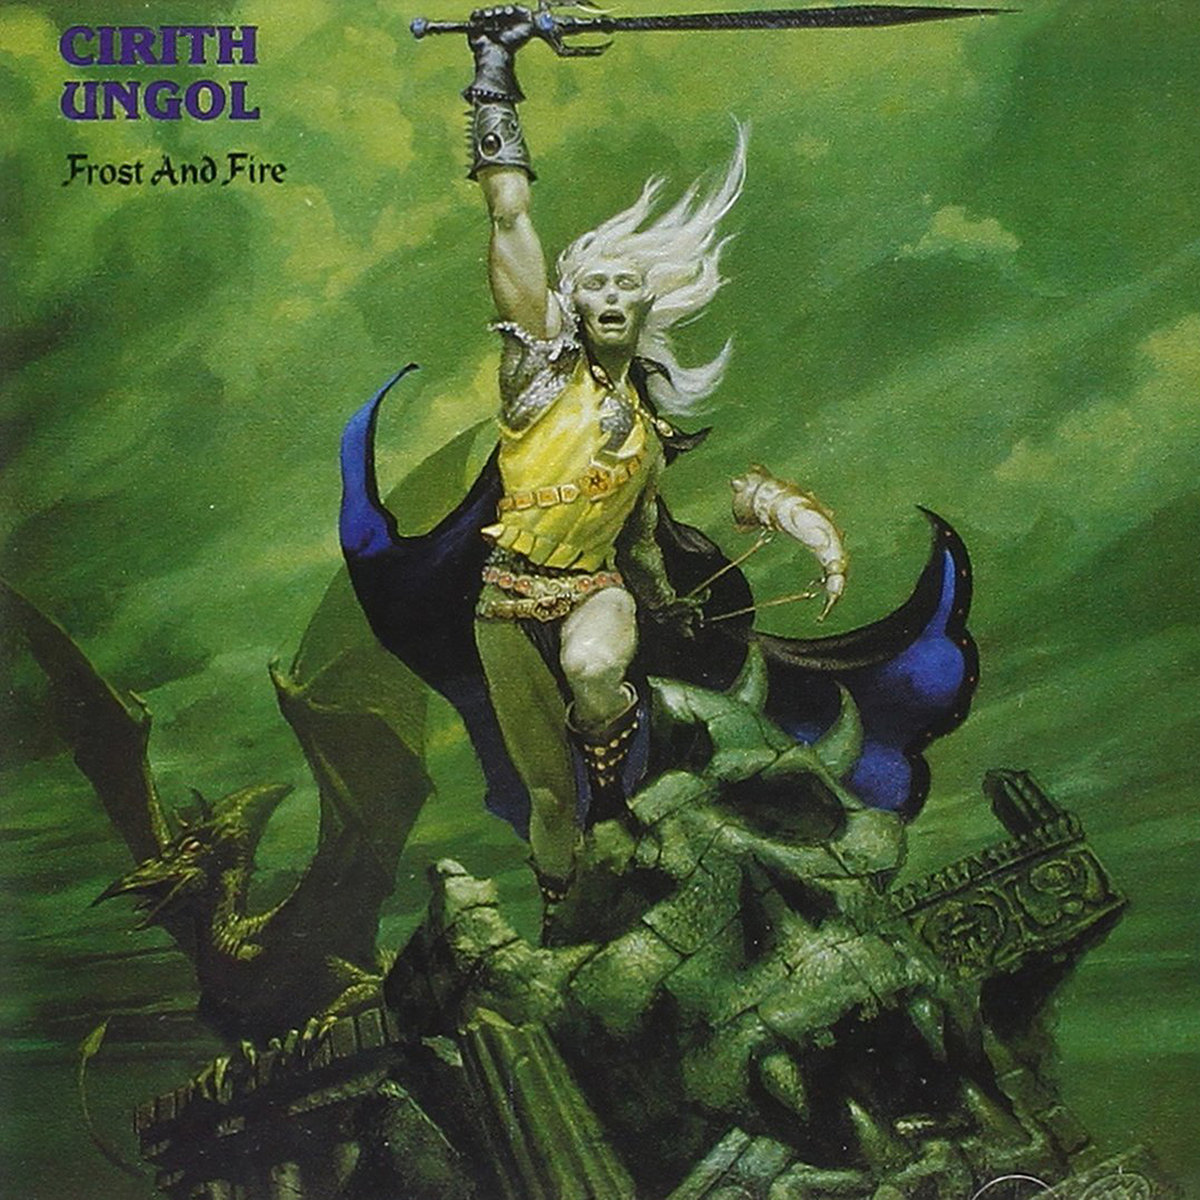 Cirith Ungol - Frost and Fire.jpg